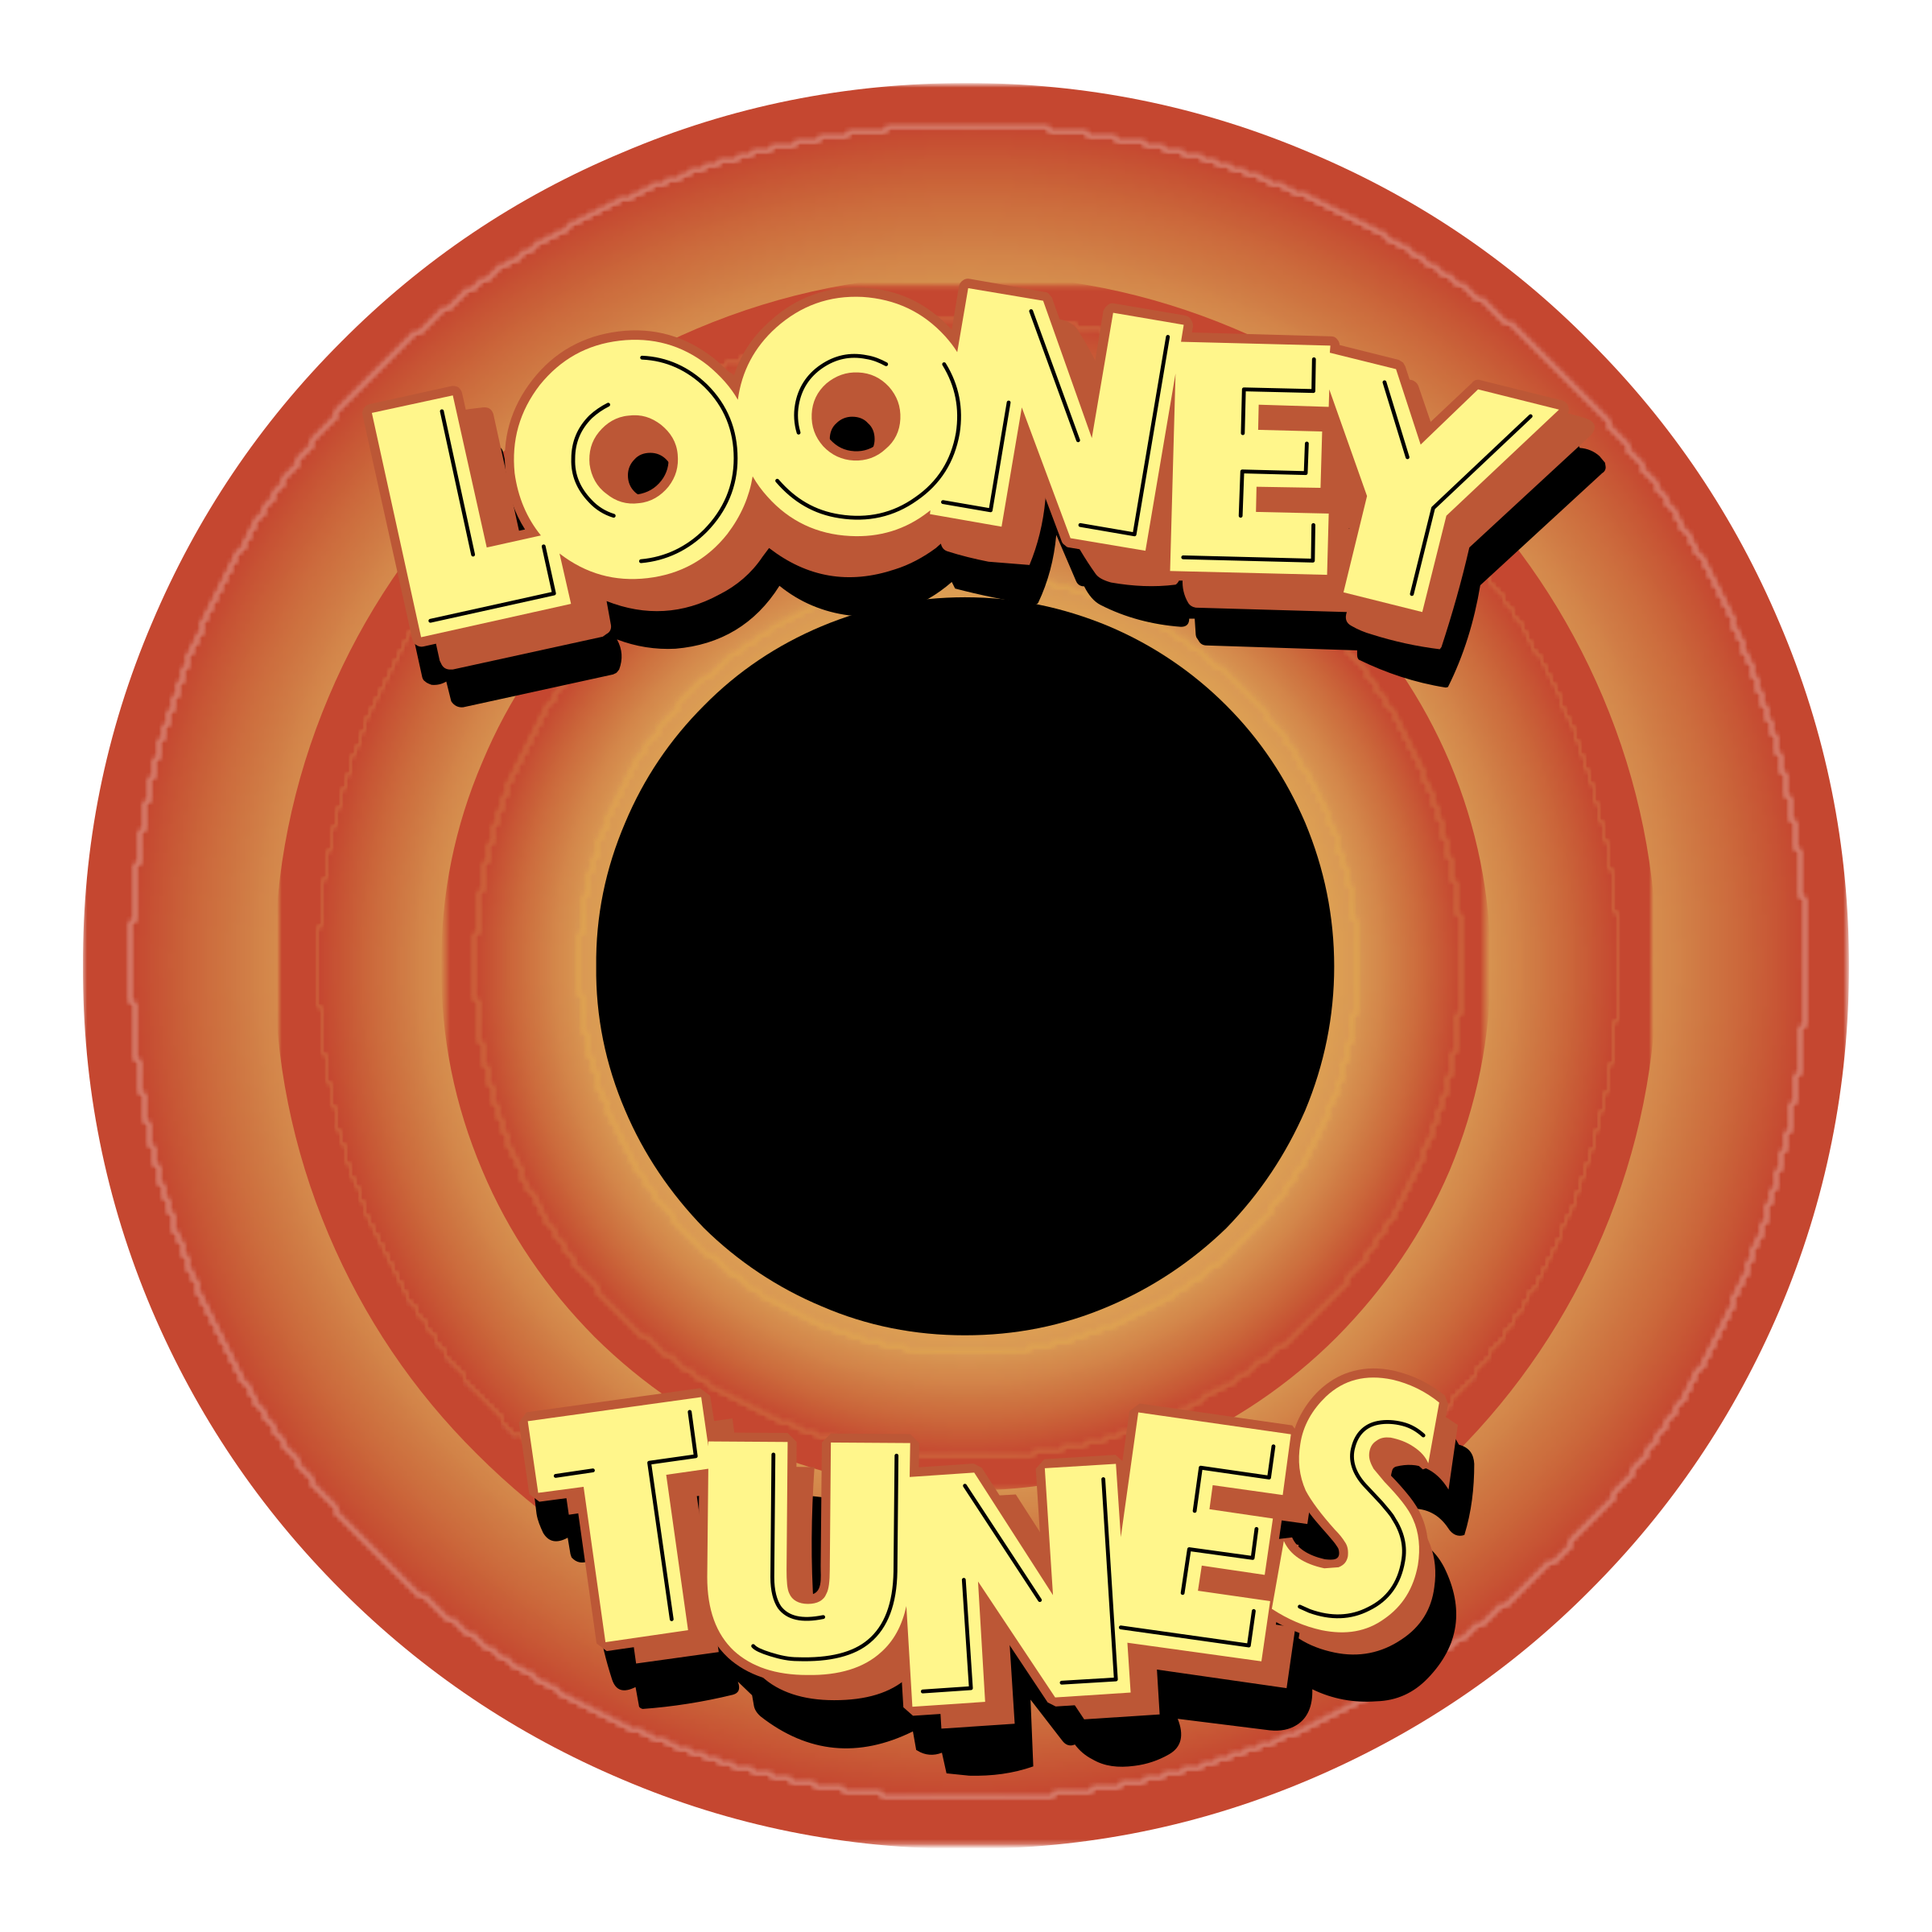 Looney Tunes Logo PNG